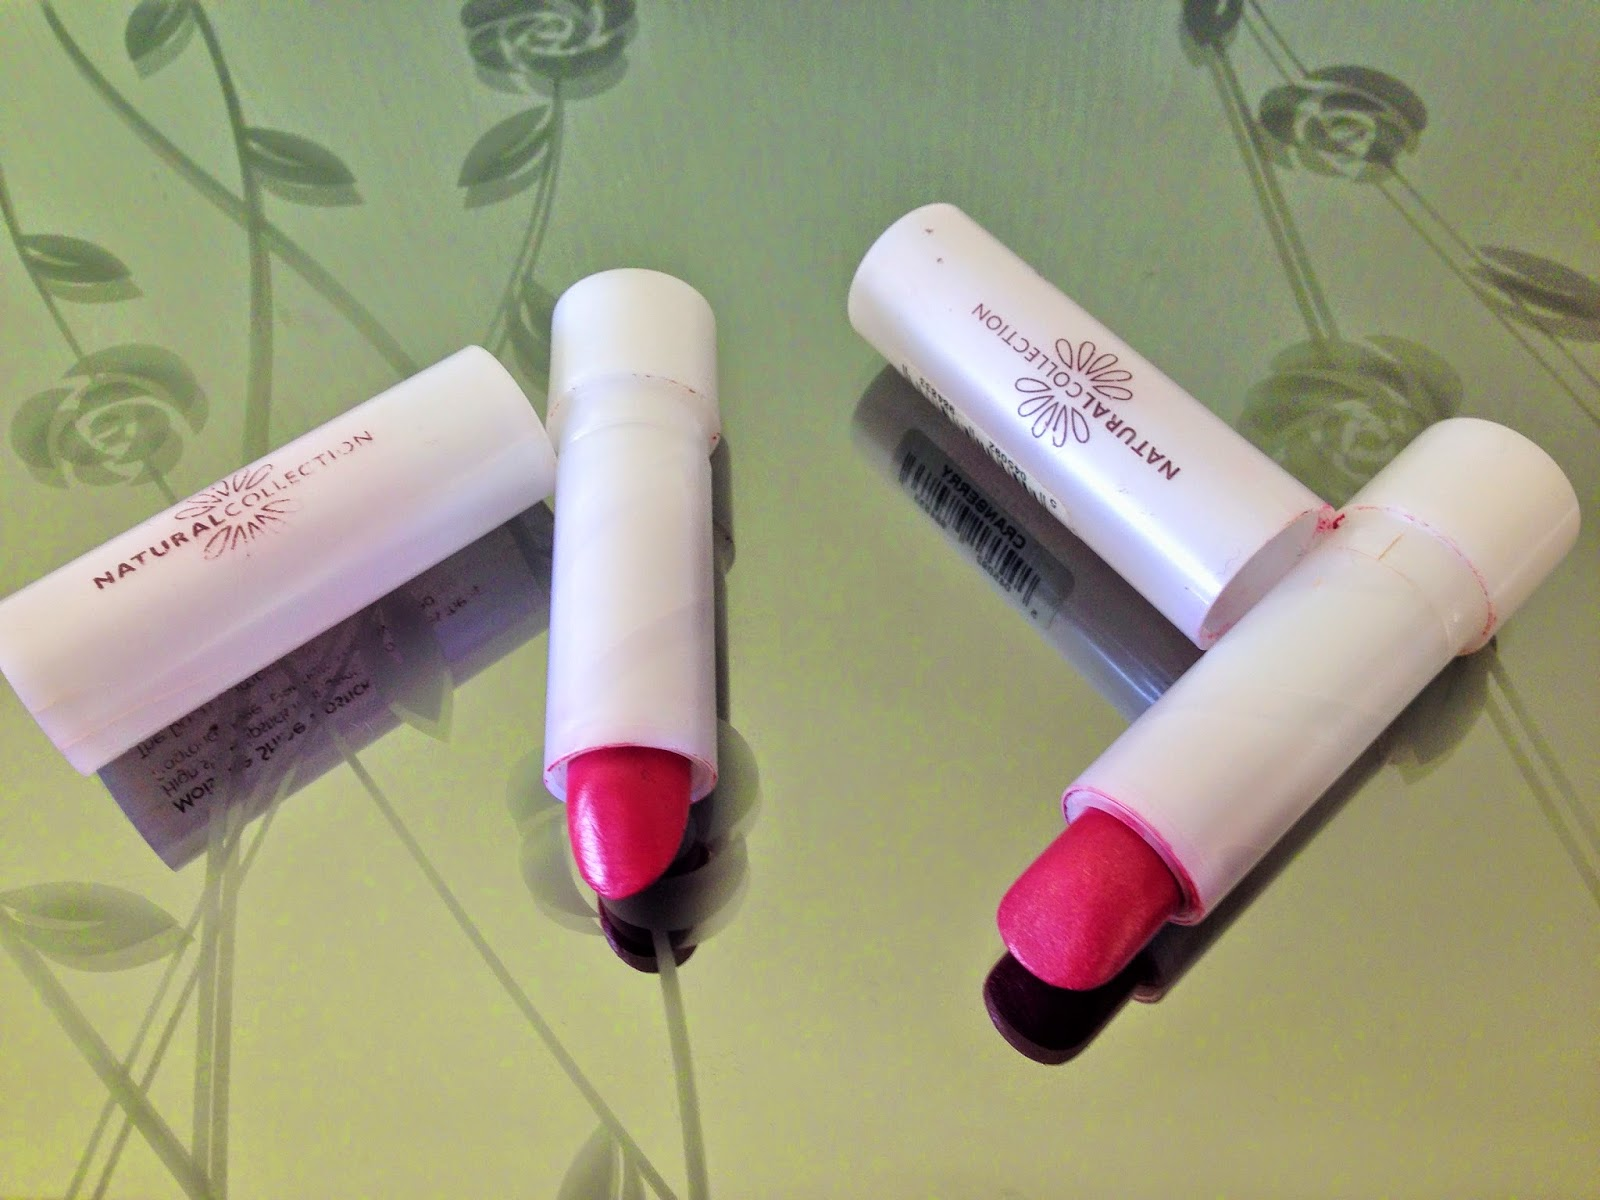 Boots Natural Collection Lipsticks in Raspberry and Cranberry